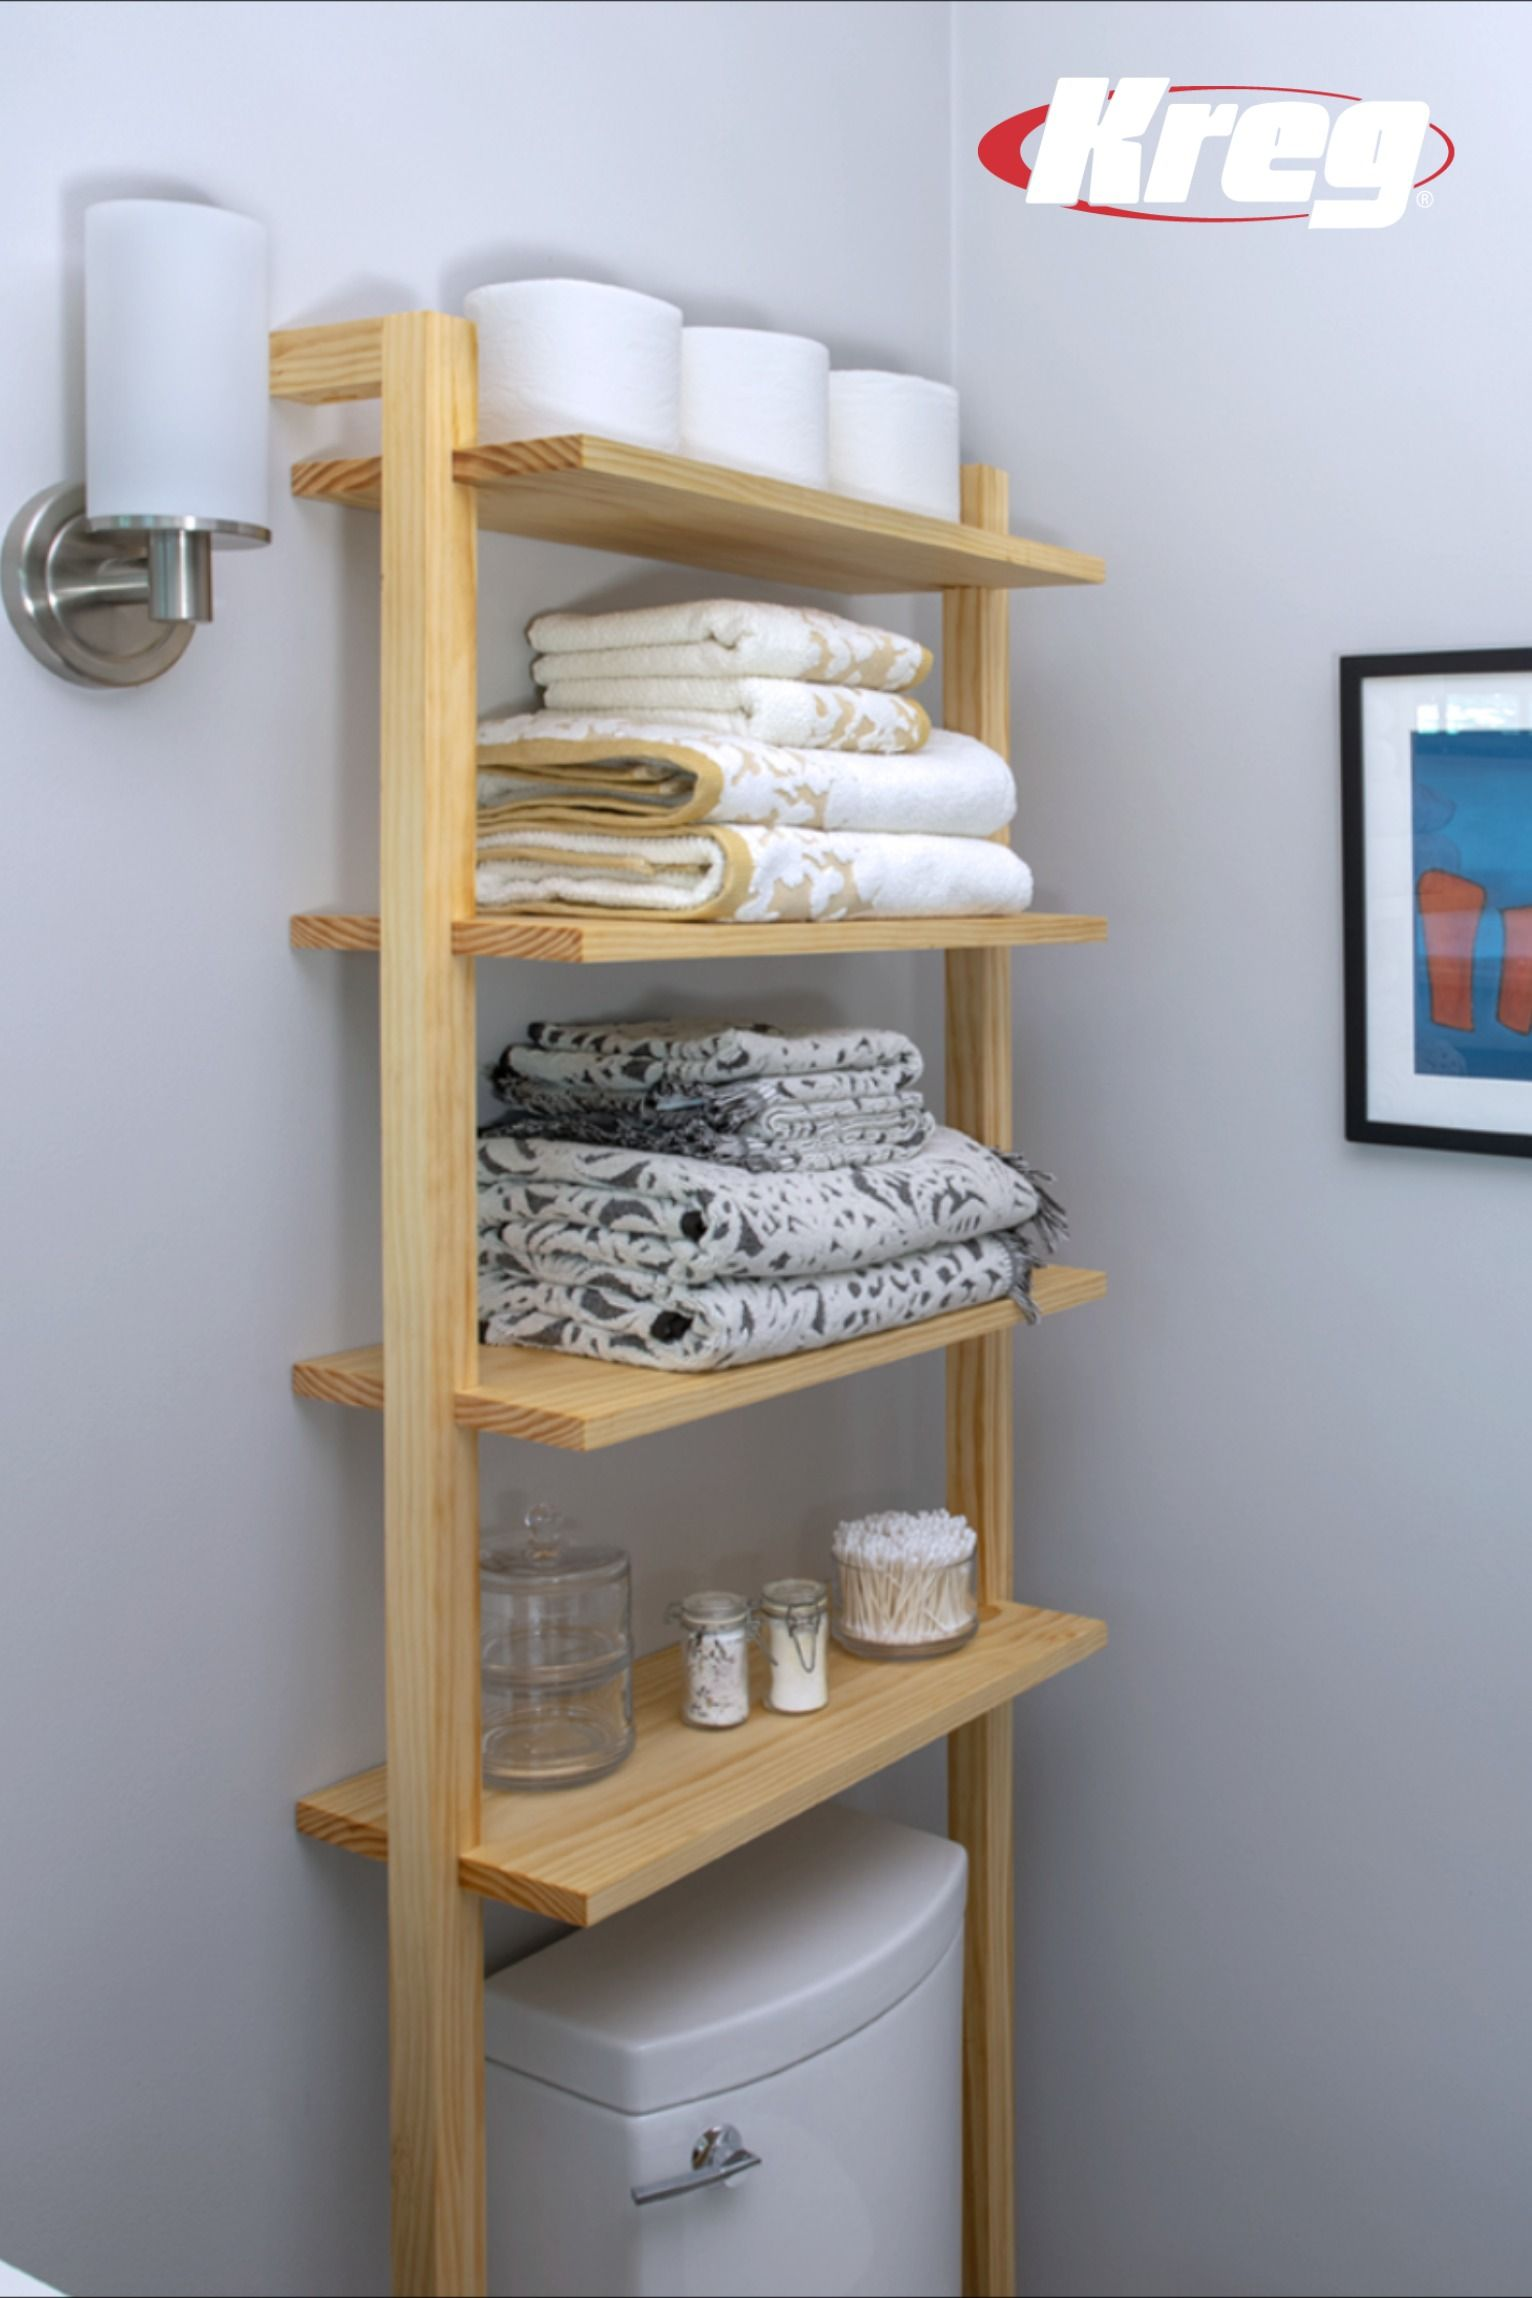 Free Project Plan How To Build Diy Bathroom Storage Shelves Bathroom Shelves For Towels Diy Bathroom Storage Bathroom Storage Shelves